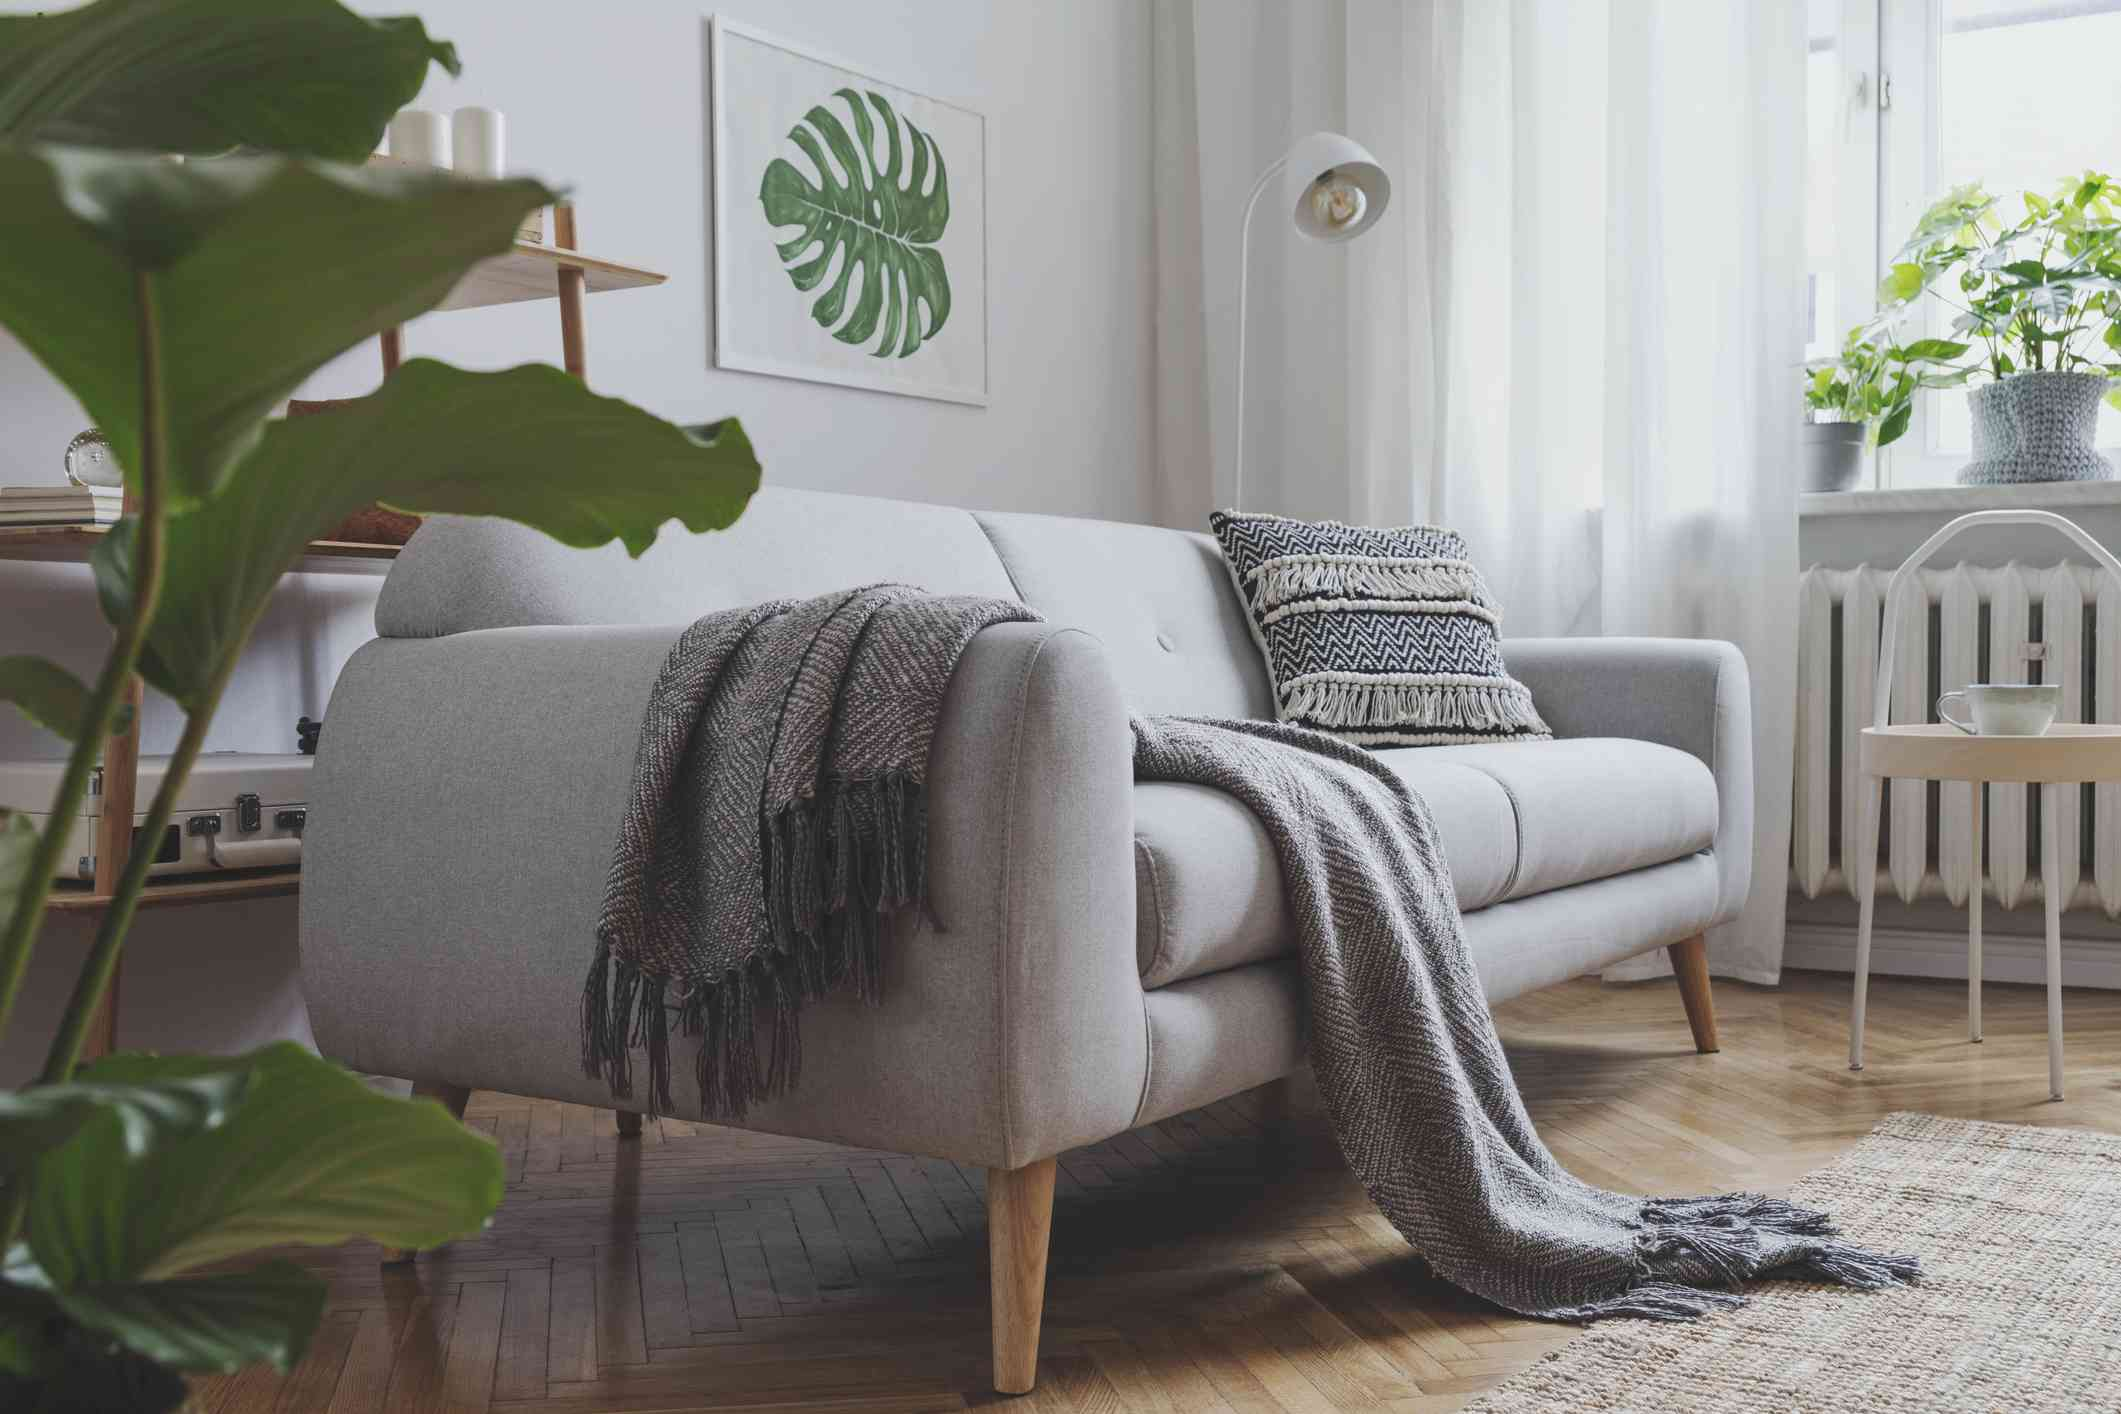 Stylish scandinavian living room with design sofa, poster, plants, bookstand, coffee table, cozy blanket and mock up frames. White background walls, brown wooden parquet and modern lamp